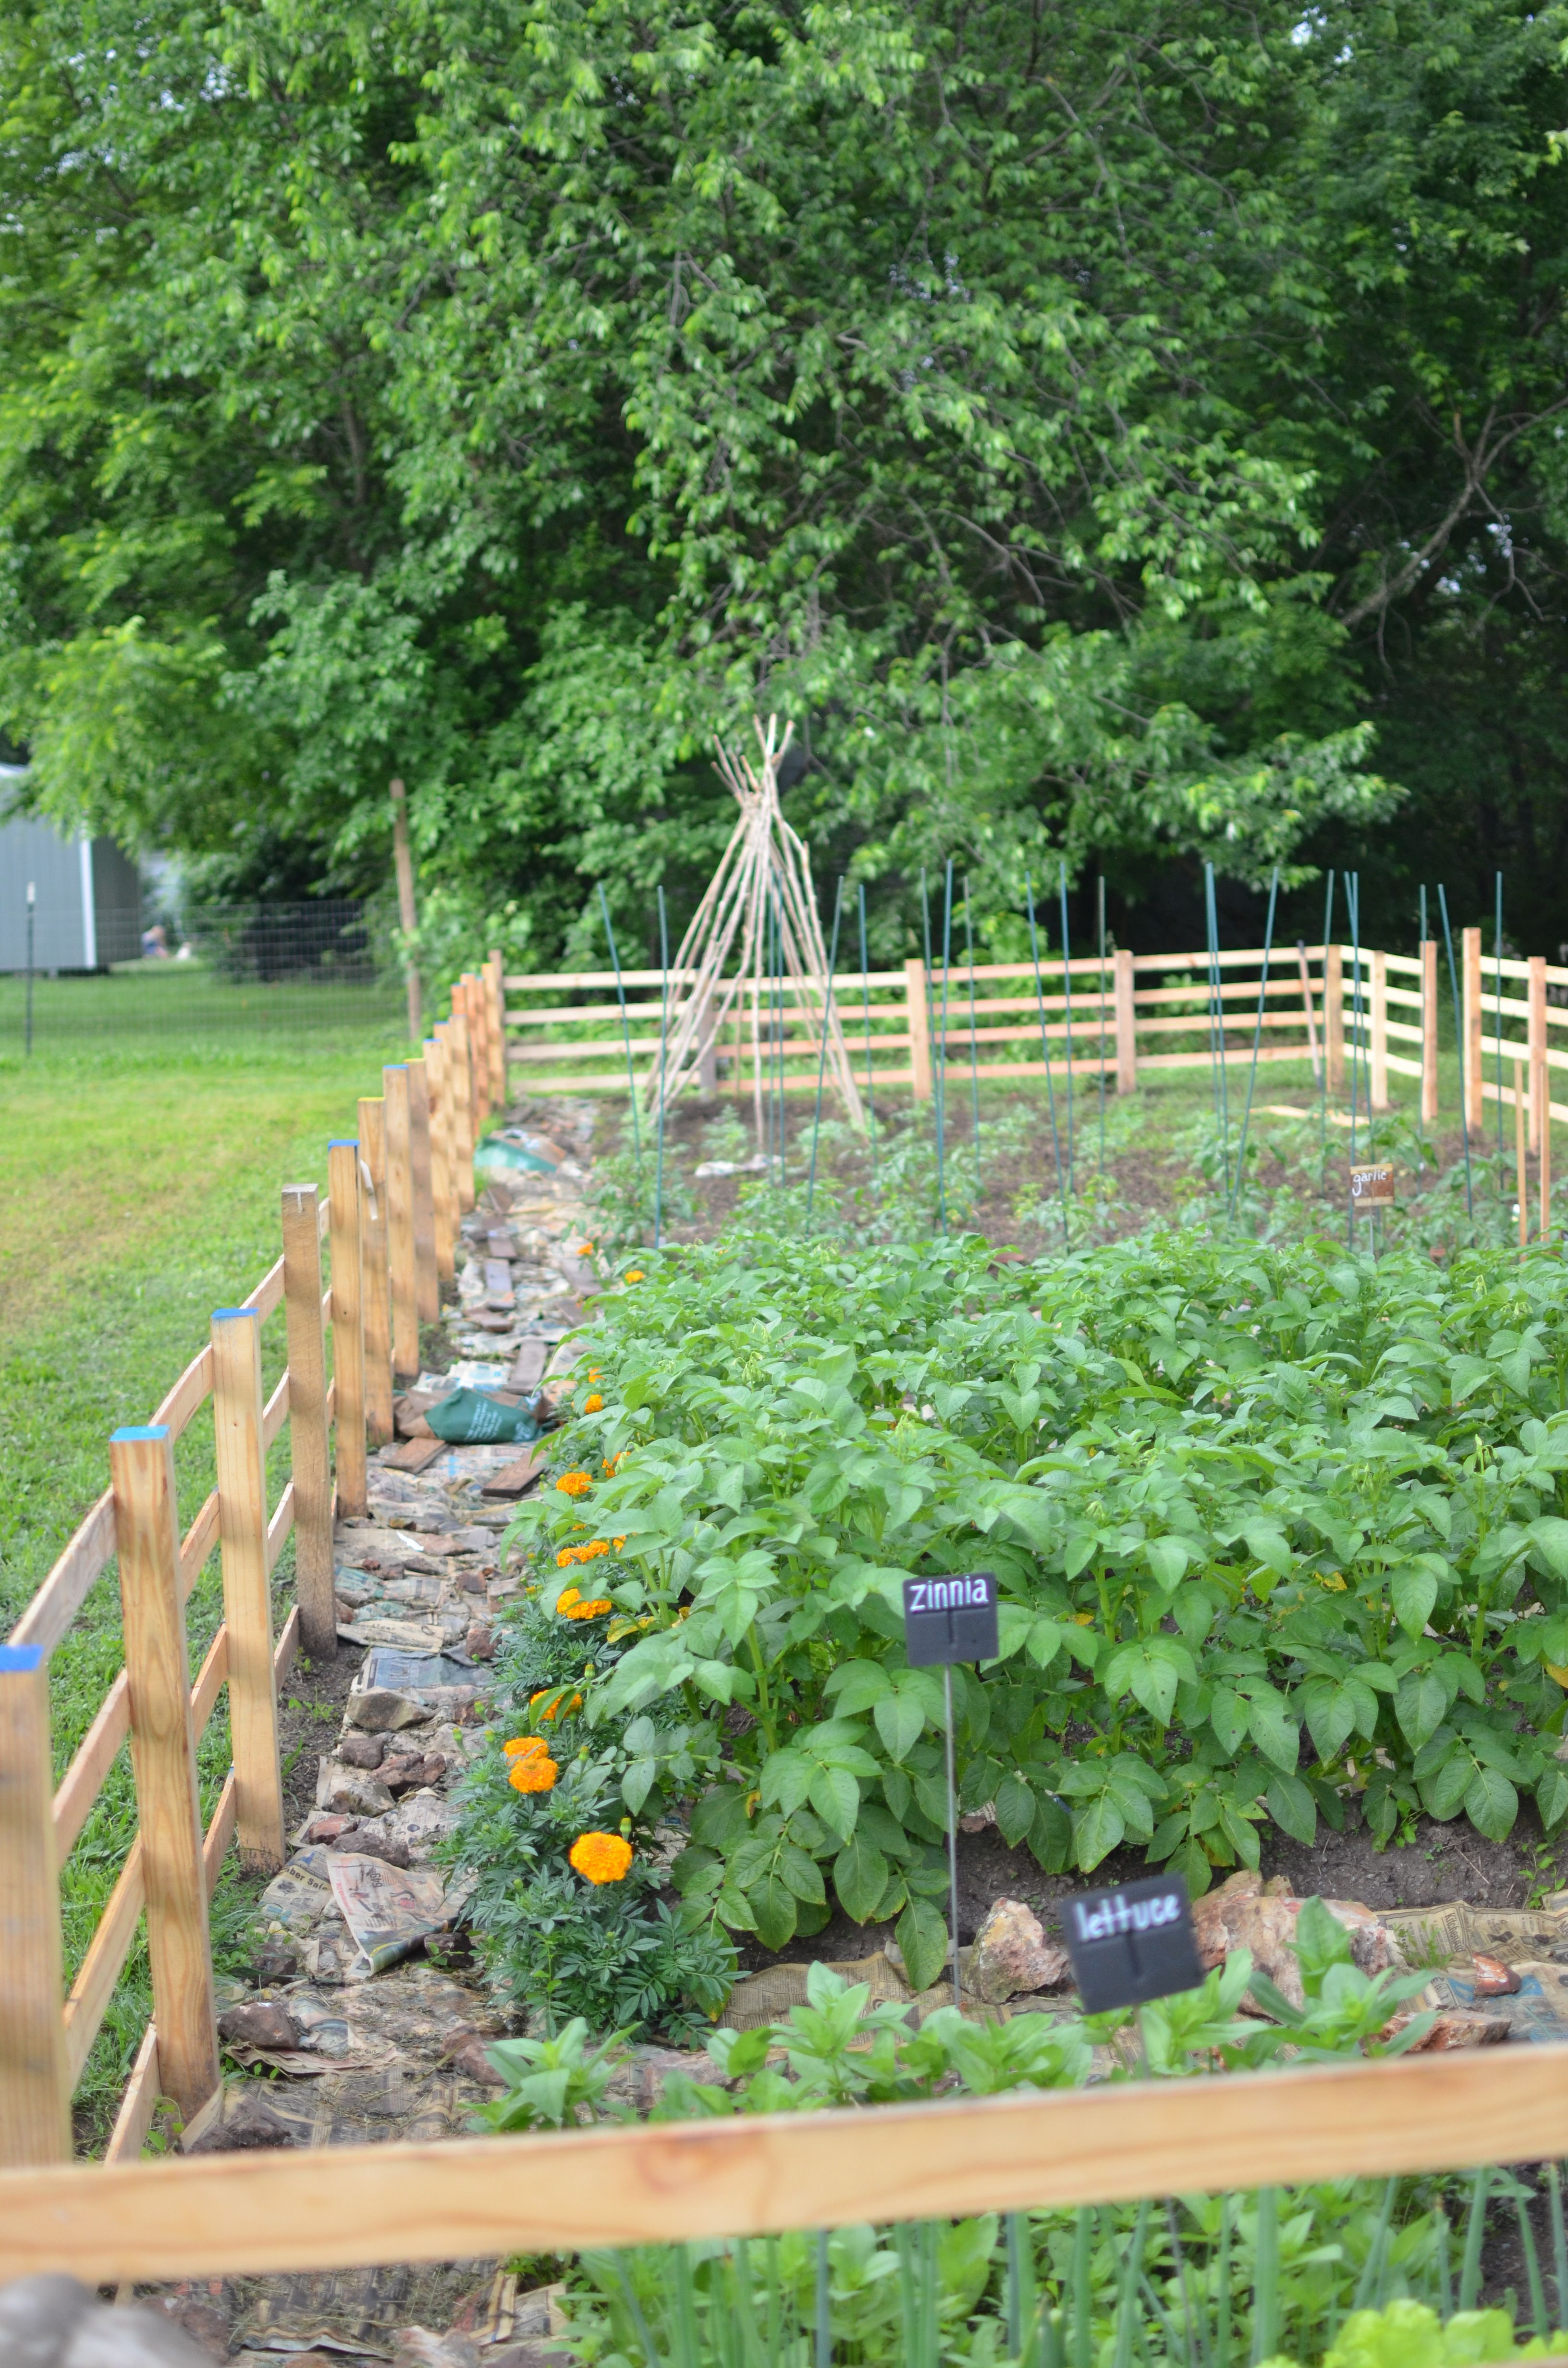 A Vegetable Garden In The Making Lay Newspaper Down To Kill The